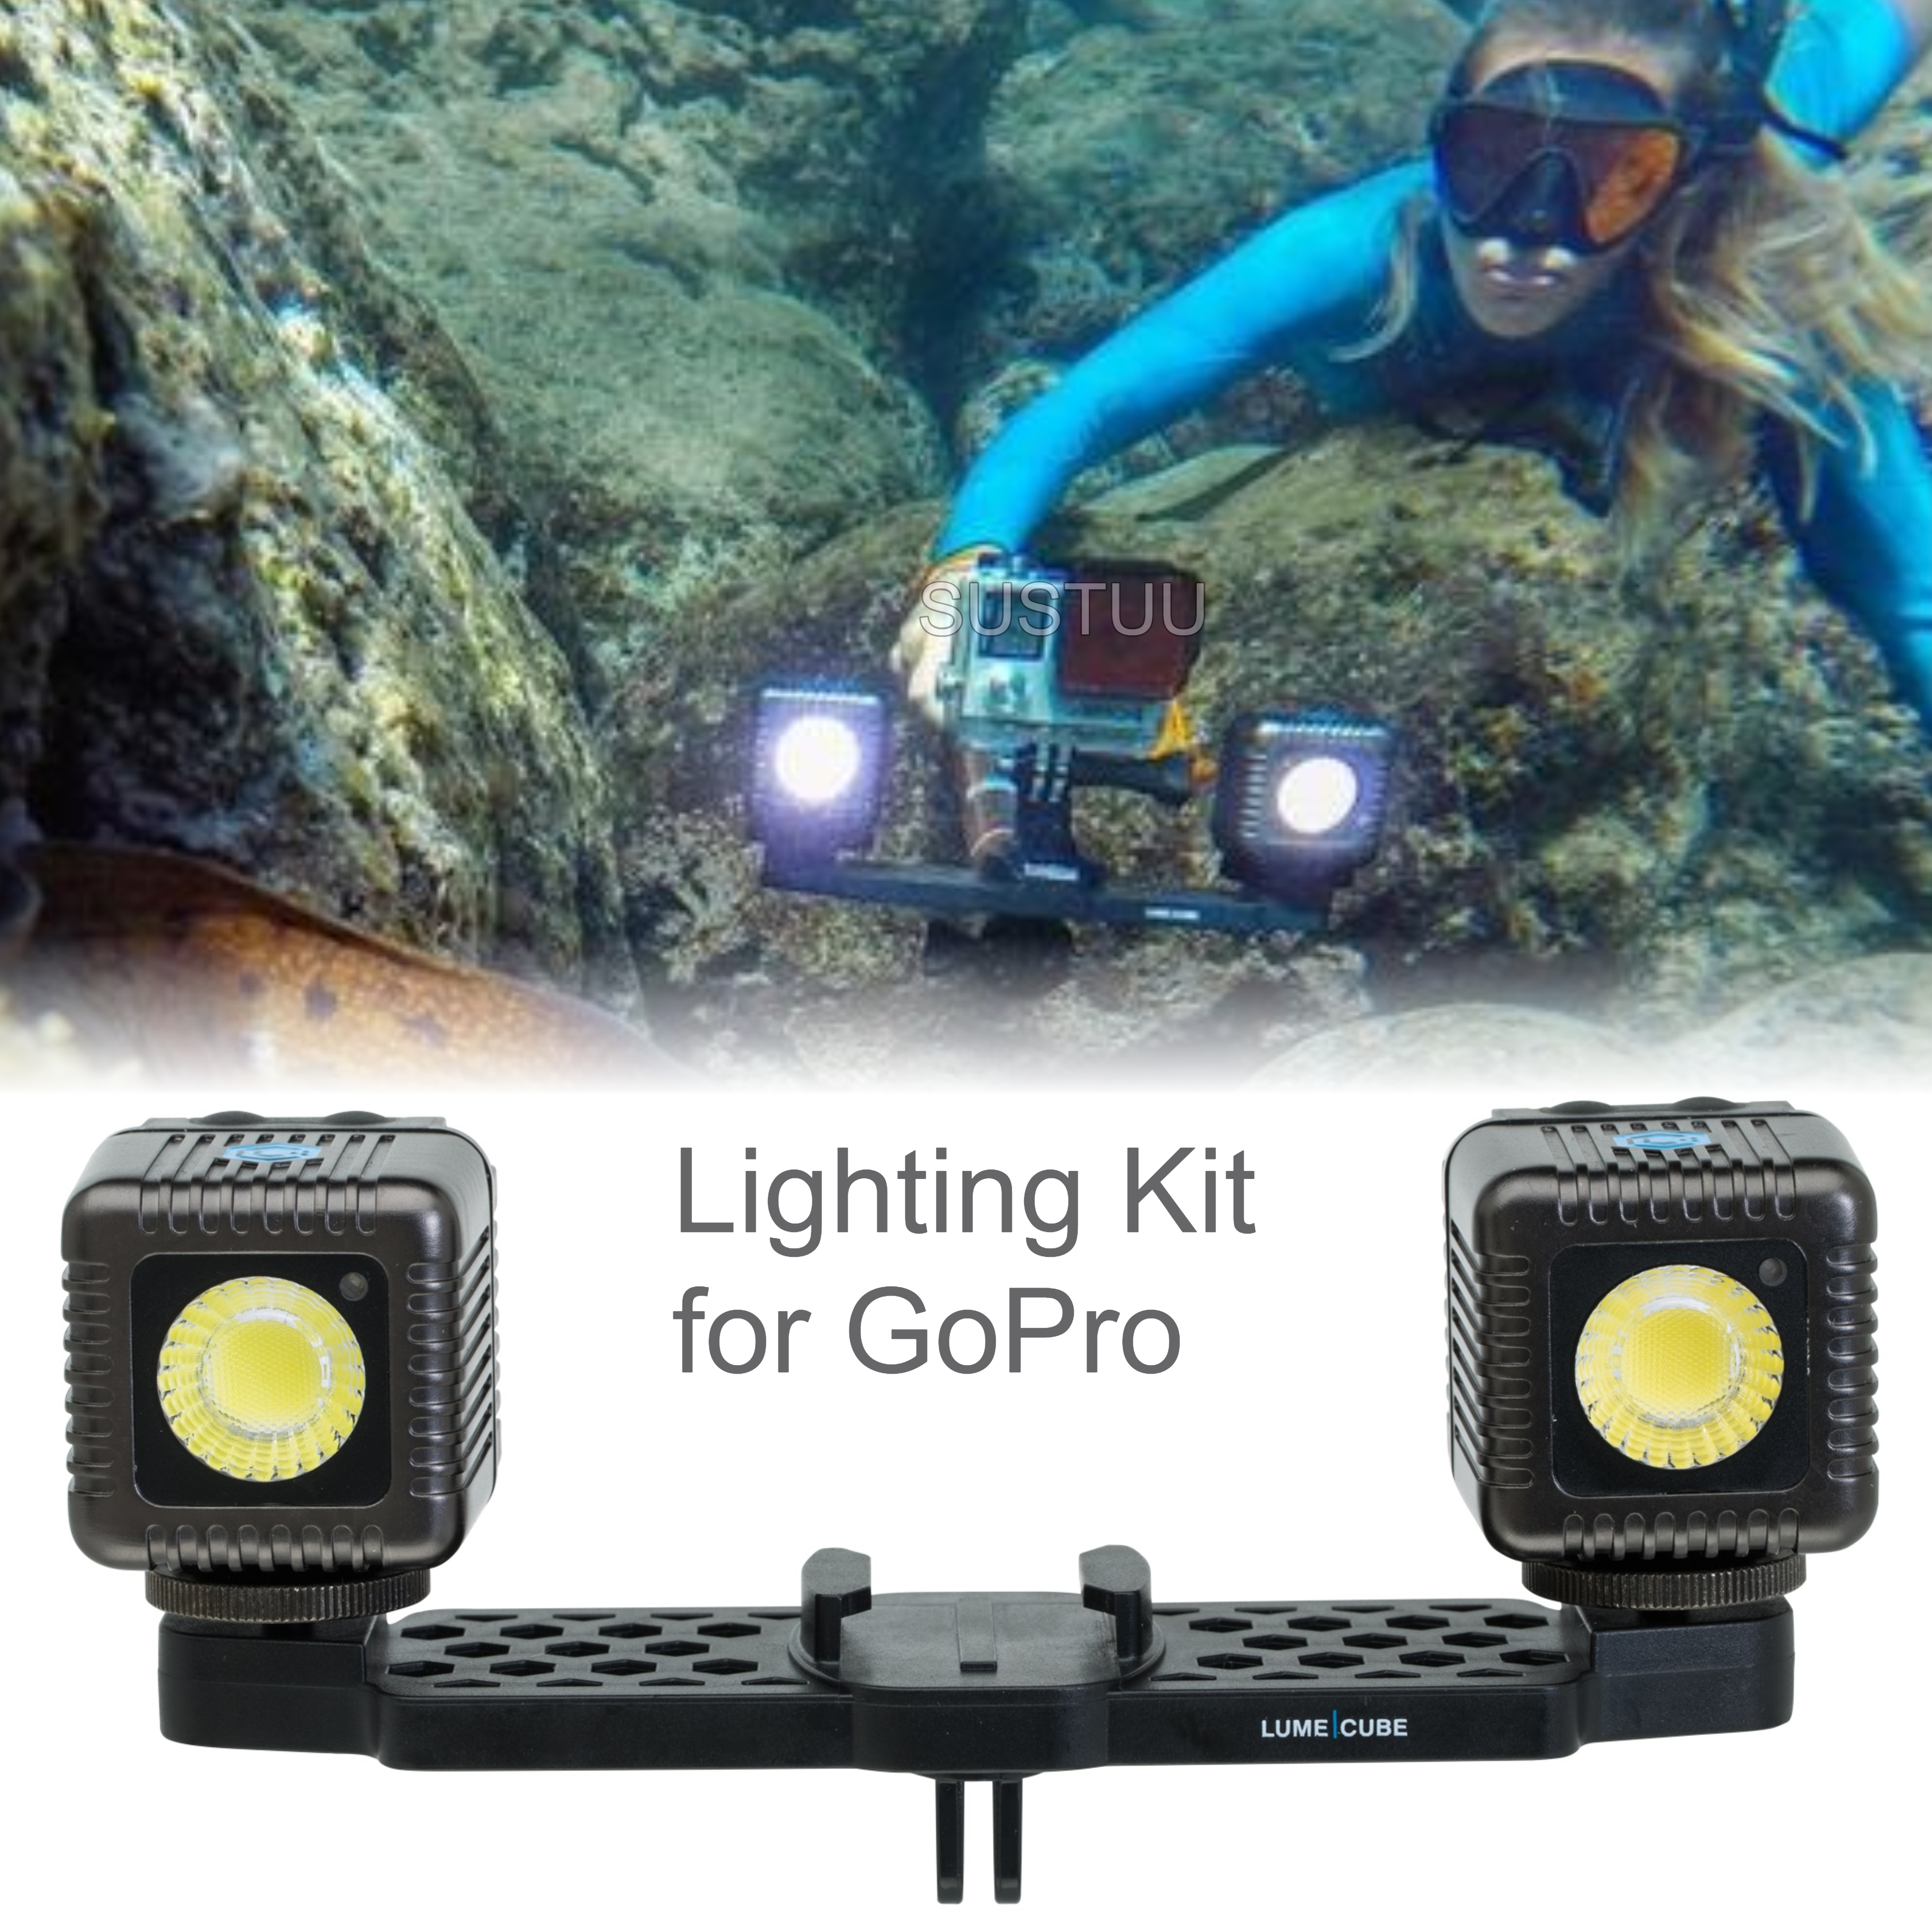 Lume Cube Lighting Kit for GoPro | Bluetooth Controlled | 1500 Lumens | Gunmetal Grey